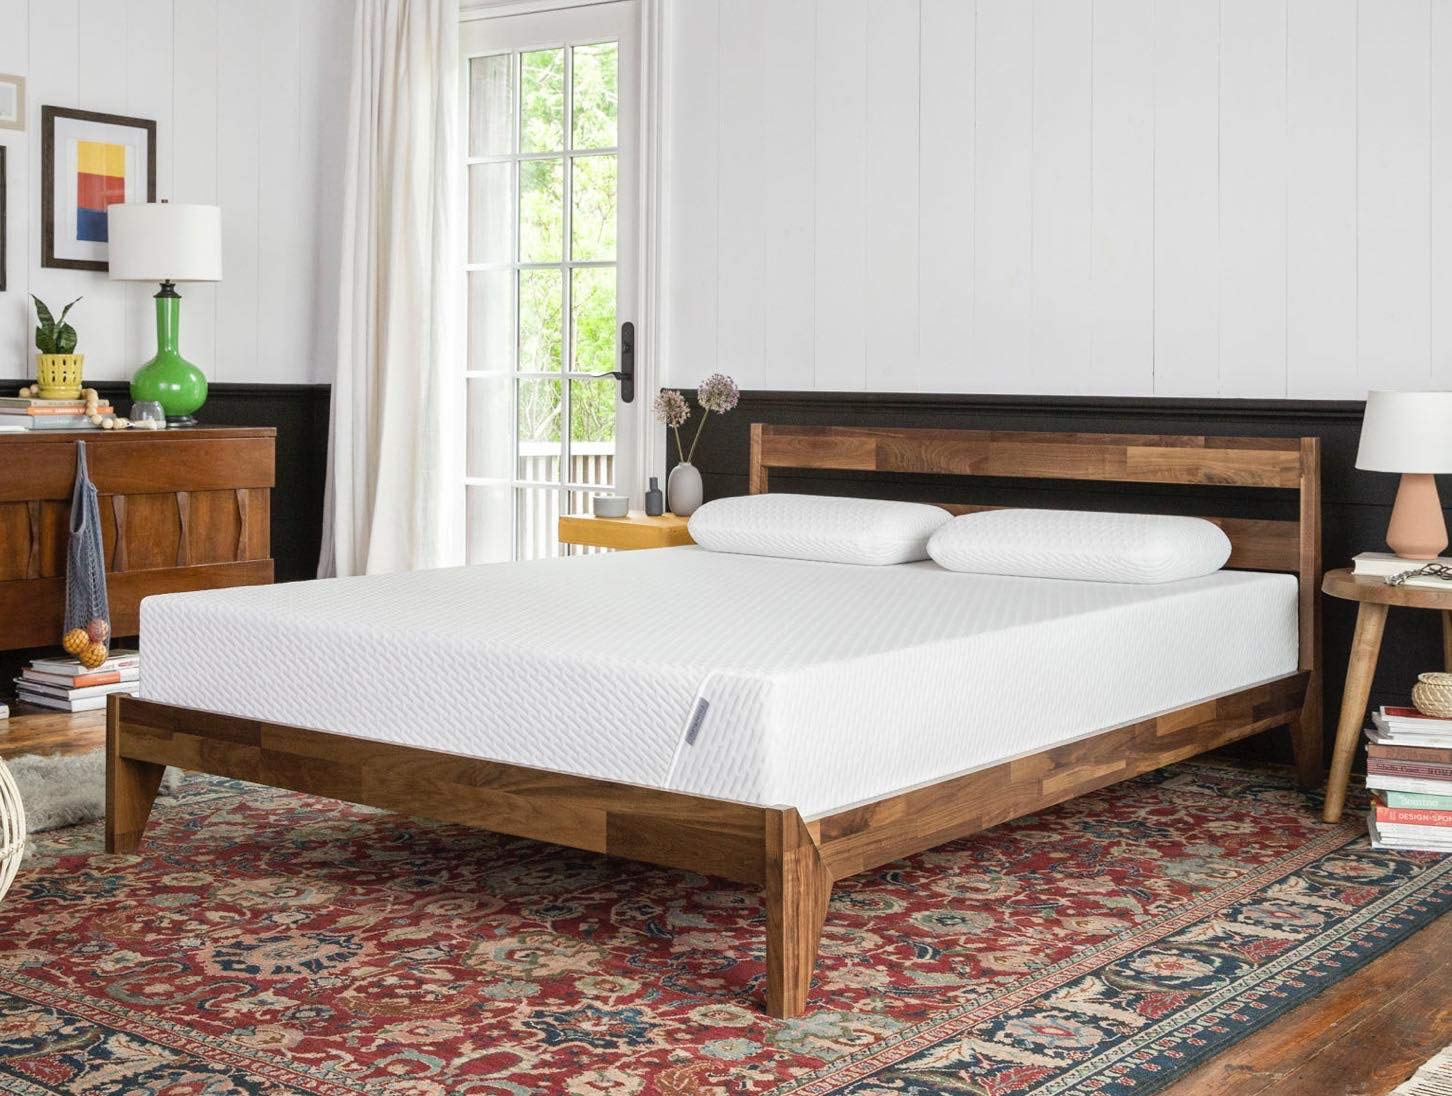 use those purposes to compare with the critical things when choosing a mattress of interest